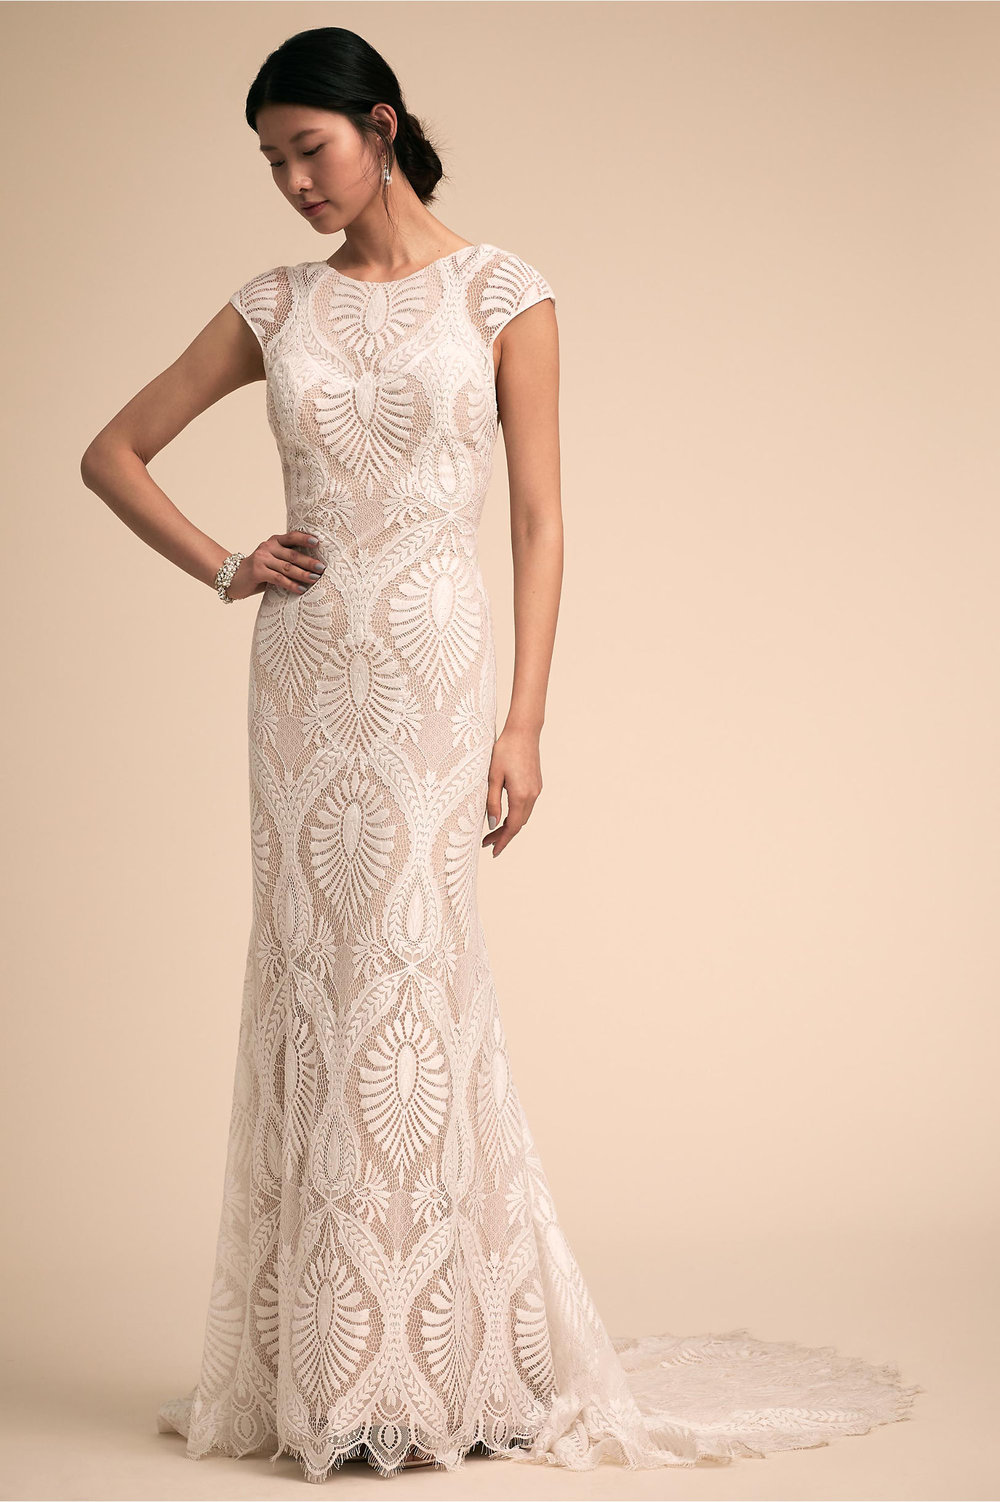 ludlow gown - $975.00